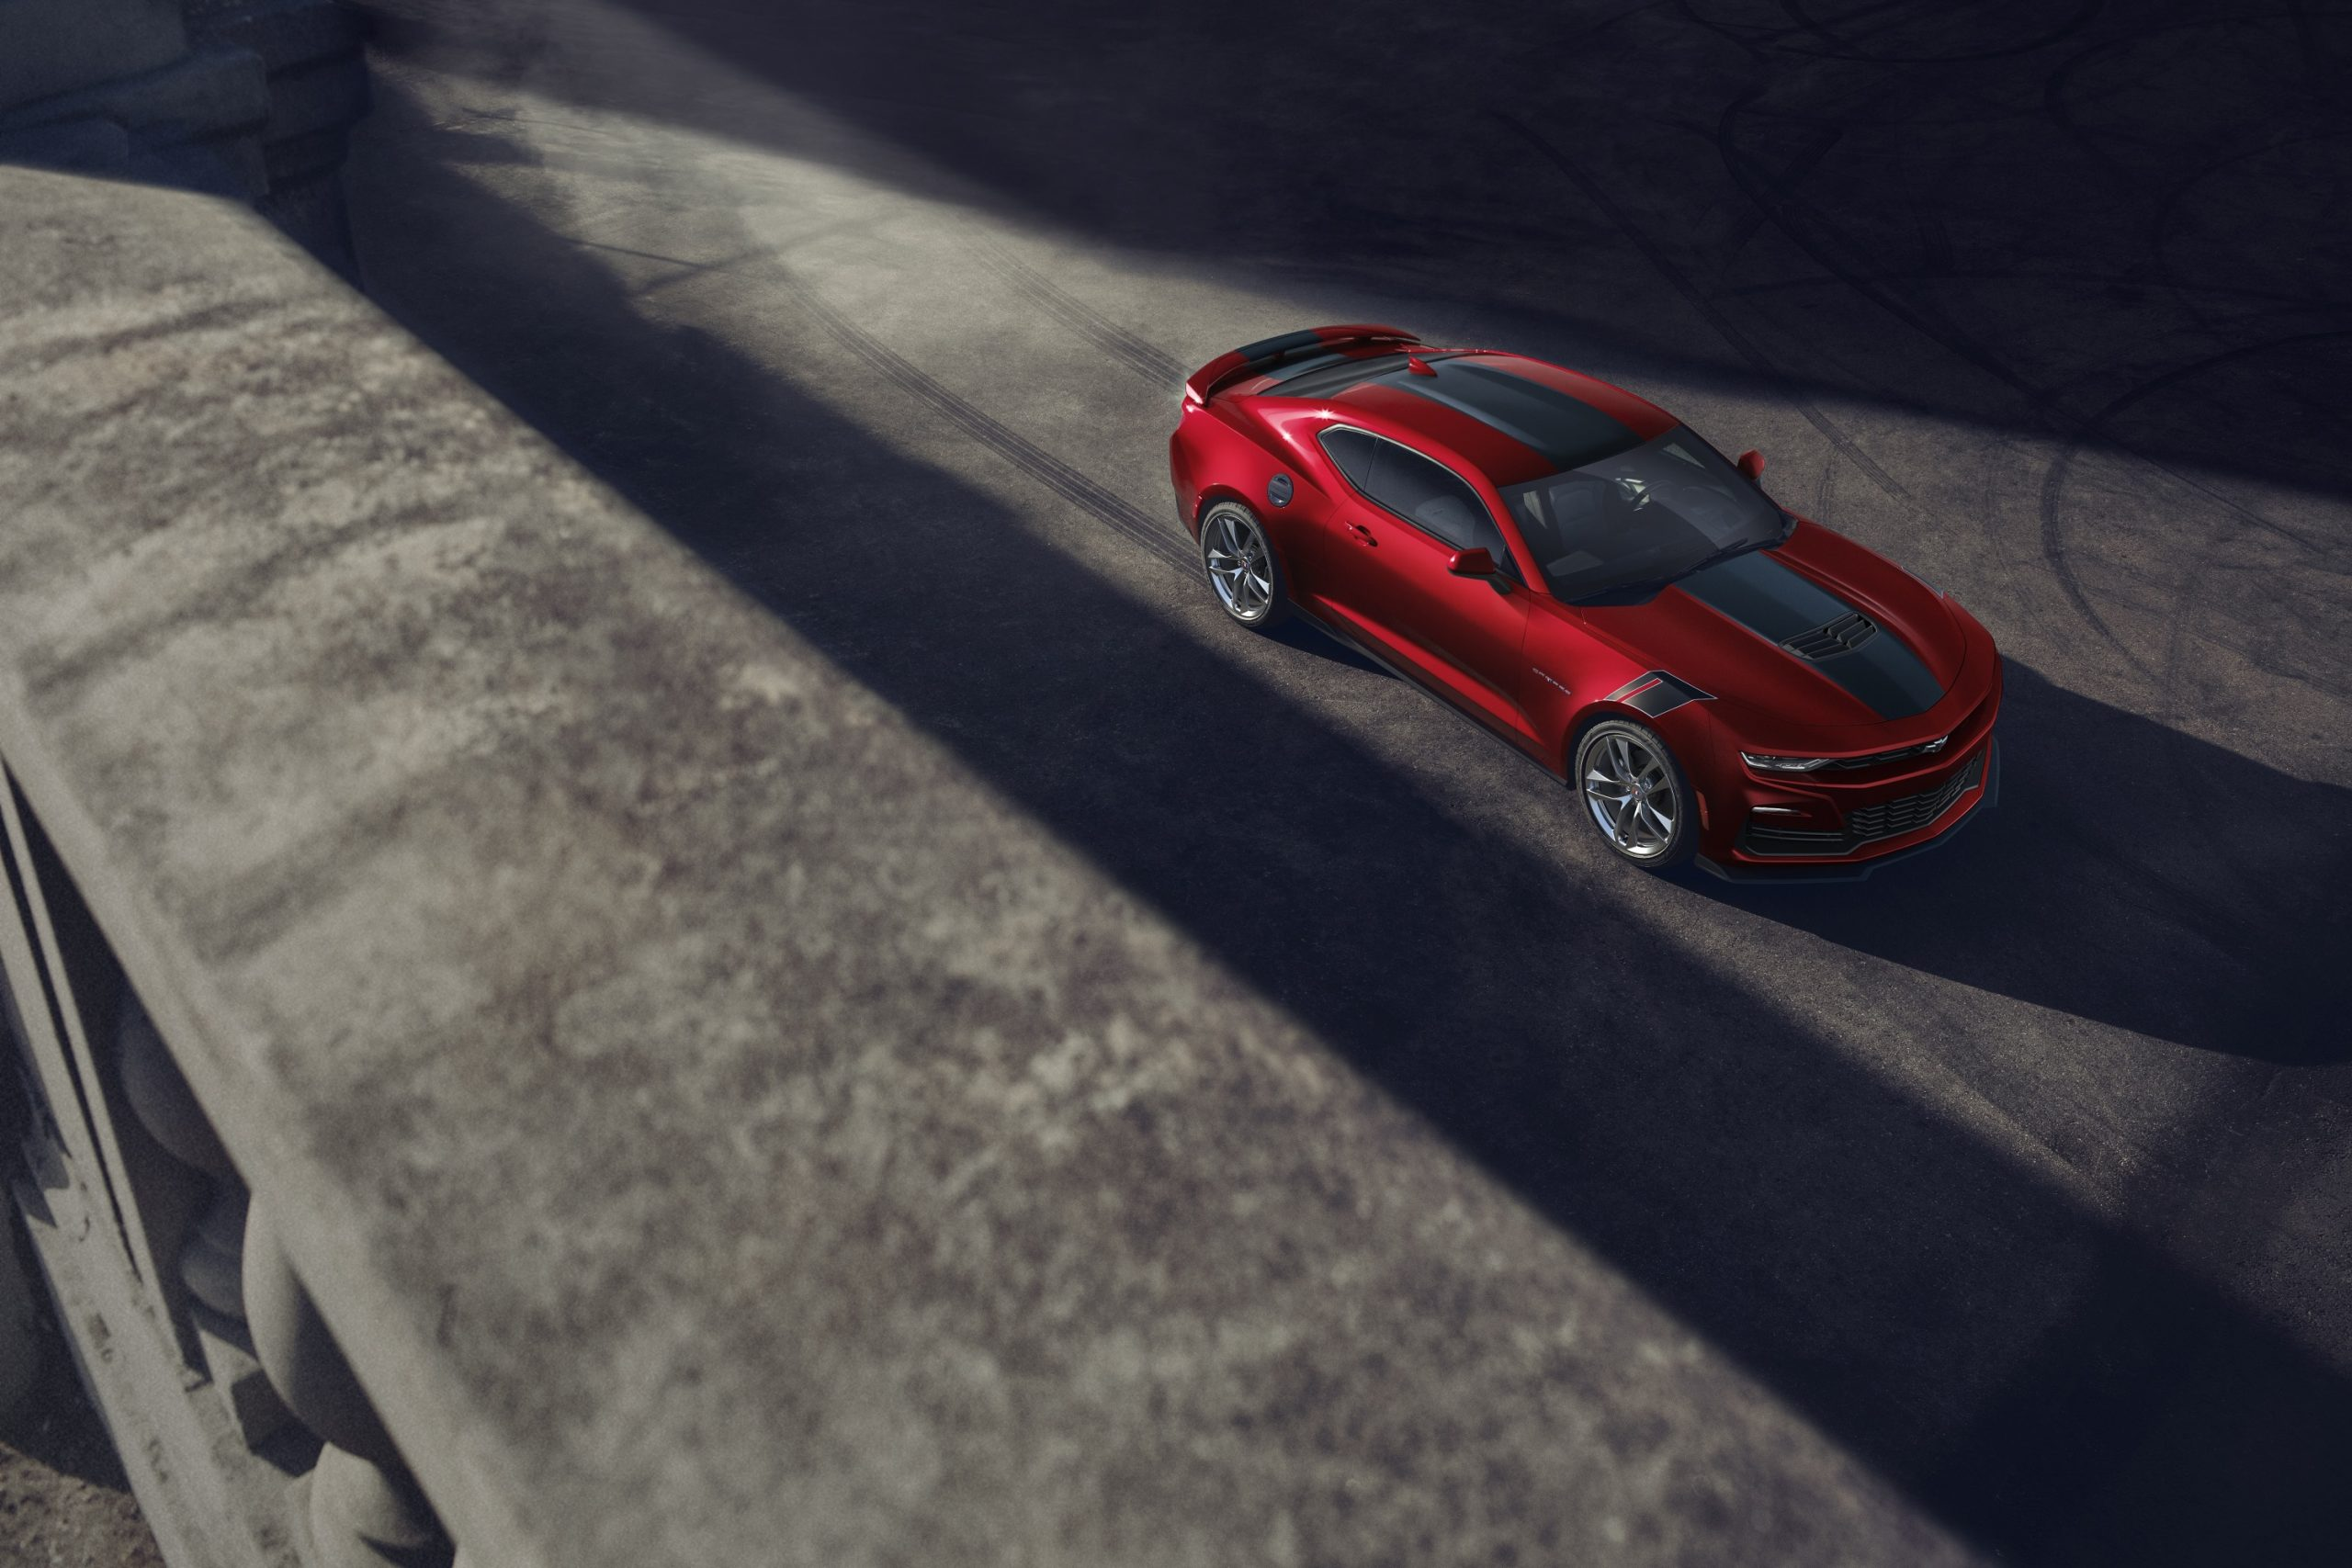 The 2021 Chevrolet Camaro SS taken from the high 3/4 angle in a warehouse